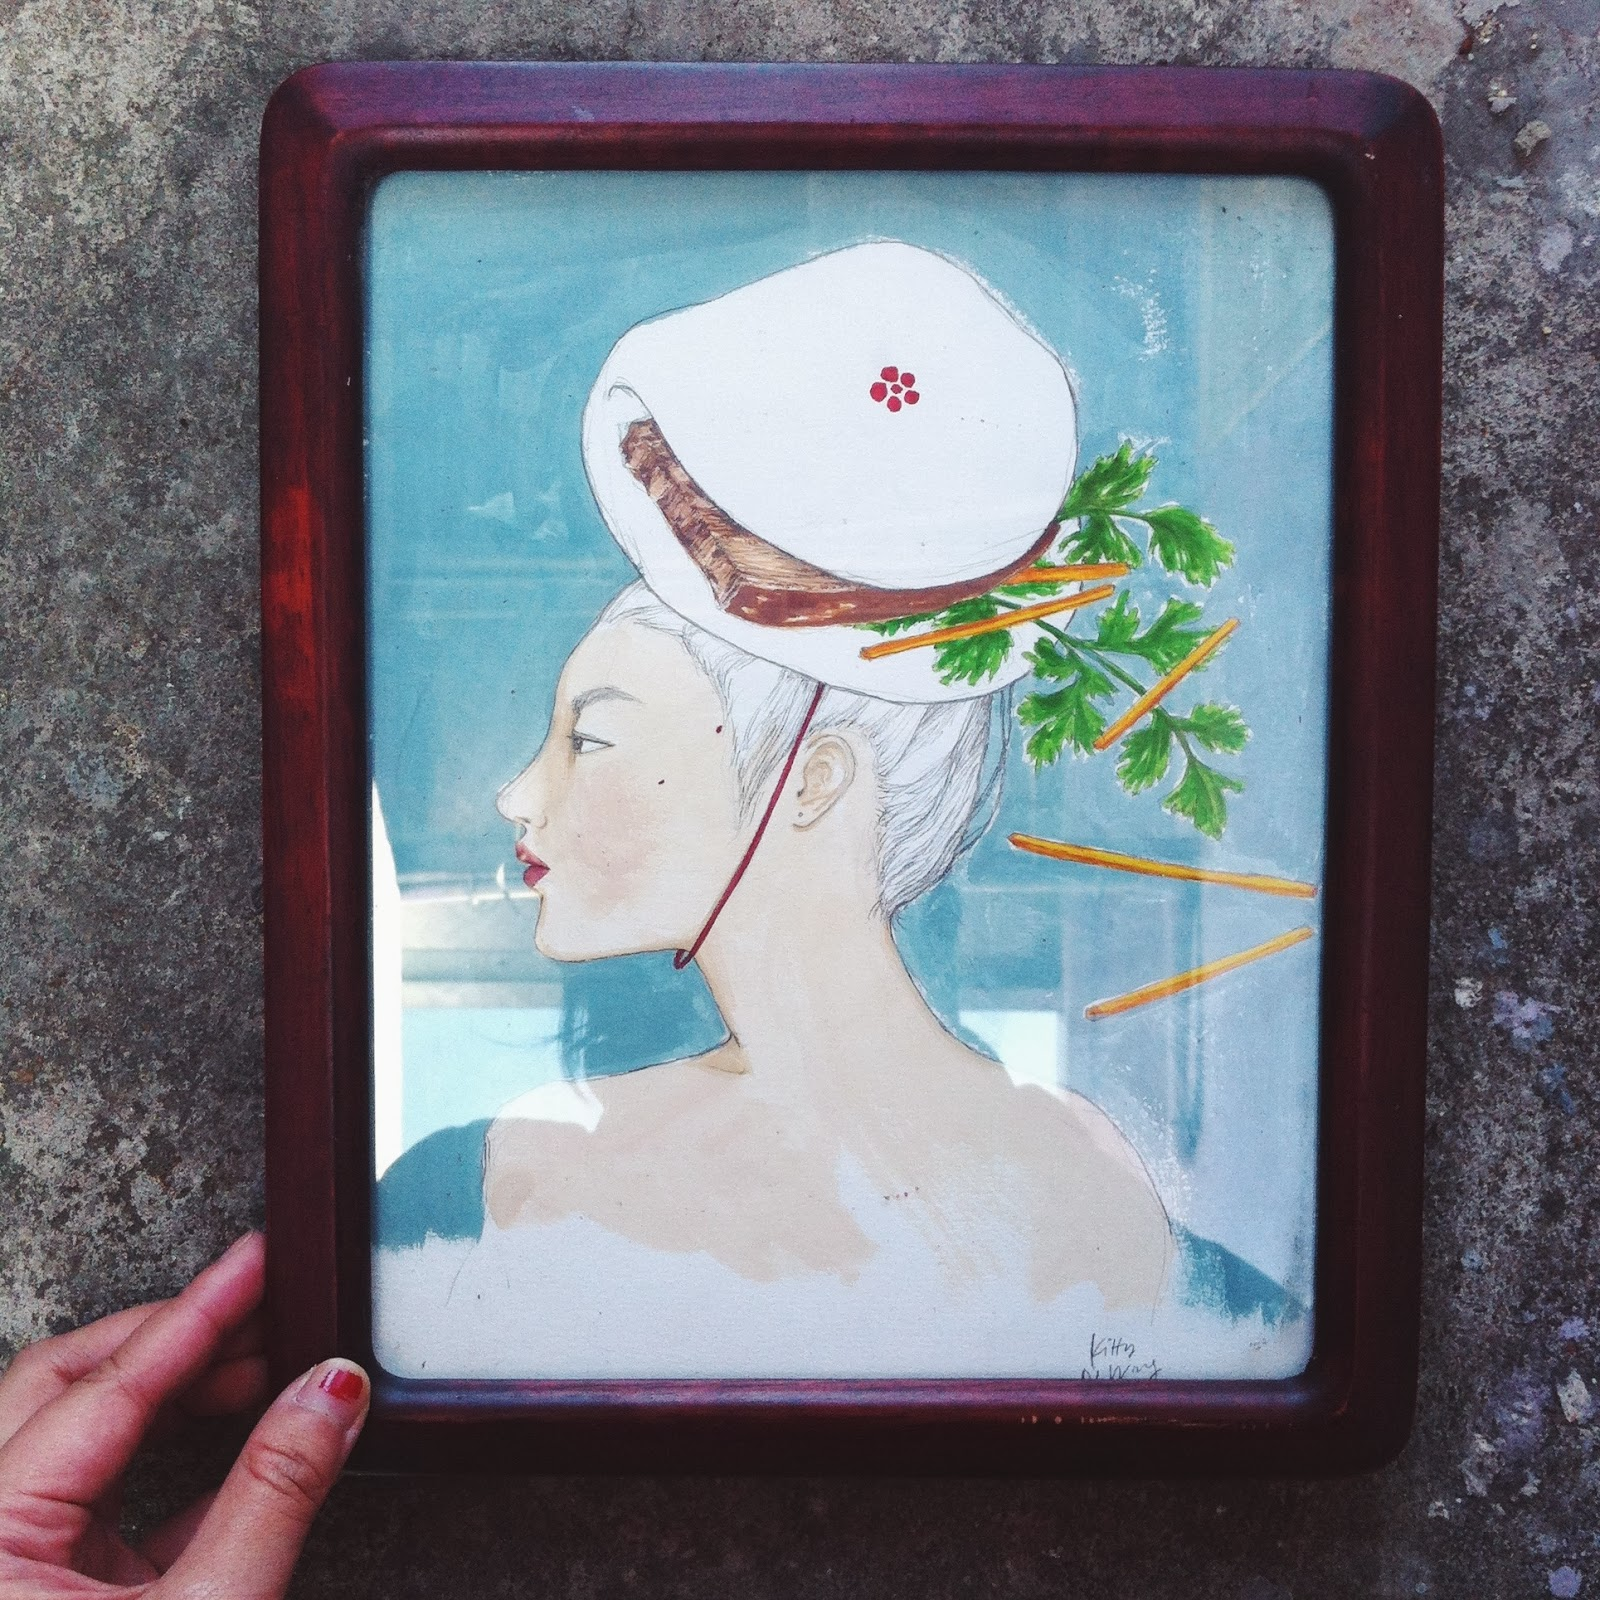 Kitty N. Wong / Madame Bao gouache painting in vintage frame